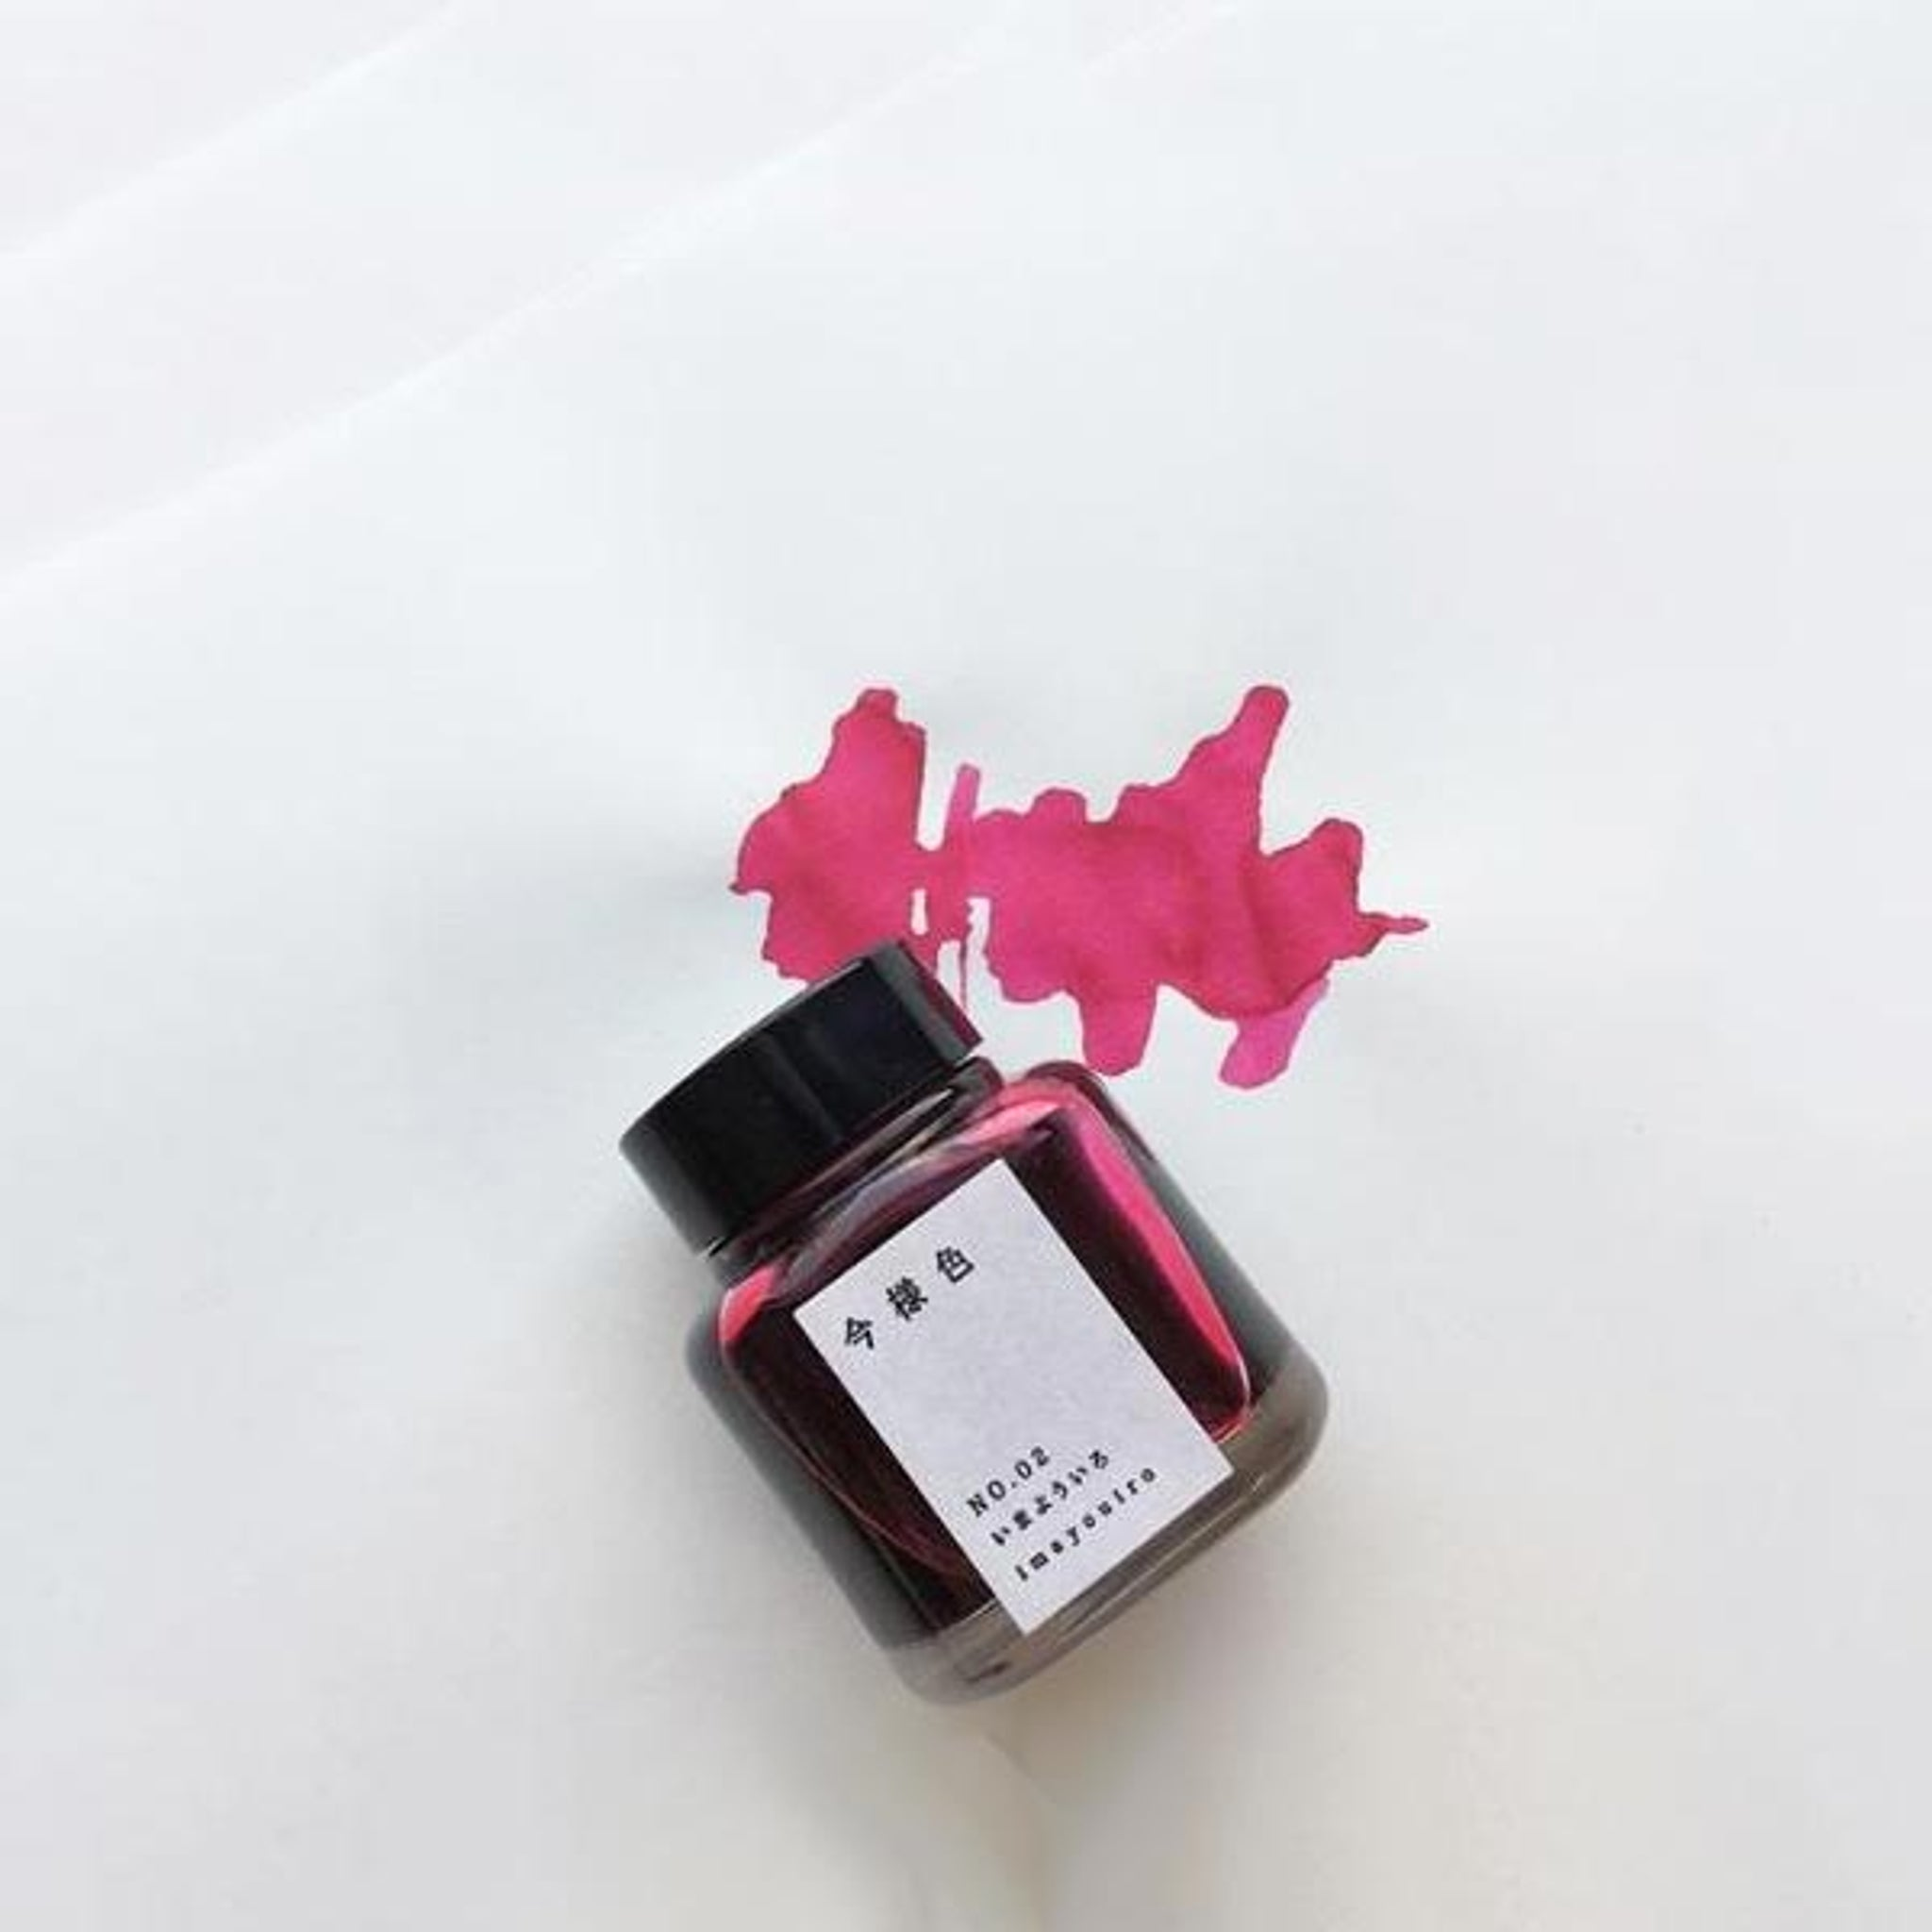 Kyoto Ink Kyo-no-oto Imayouiro 40ml Bottled Ink